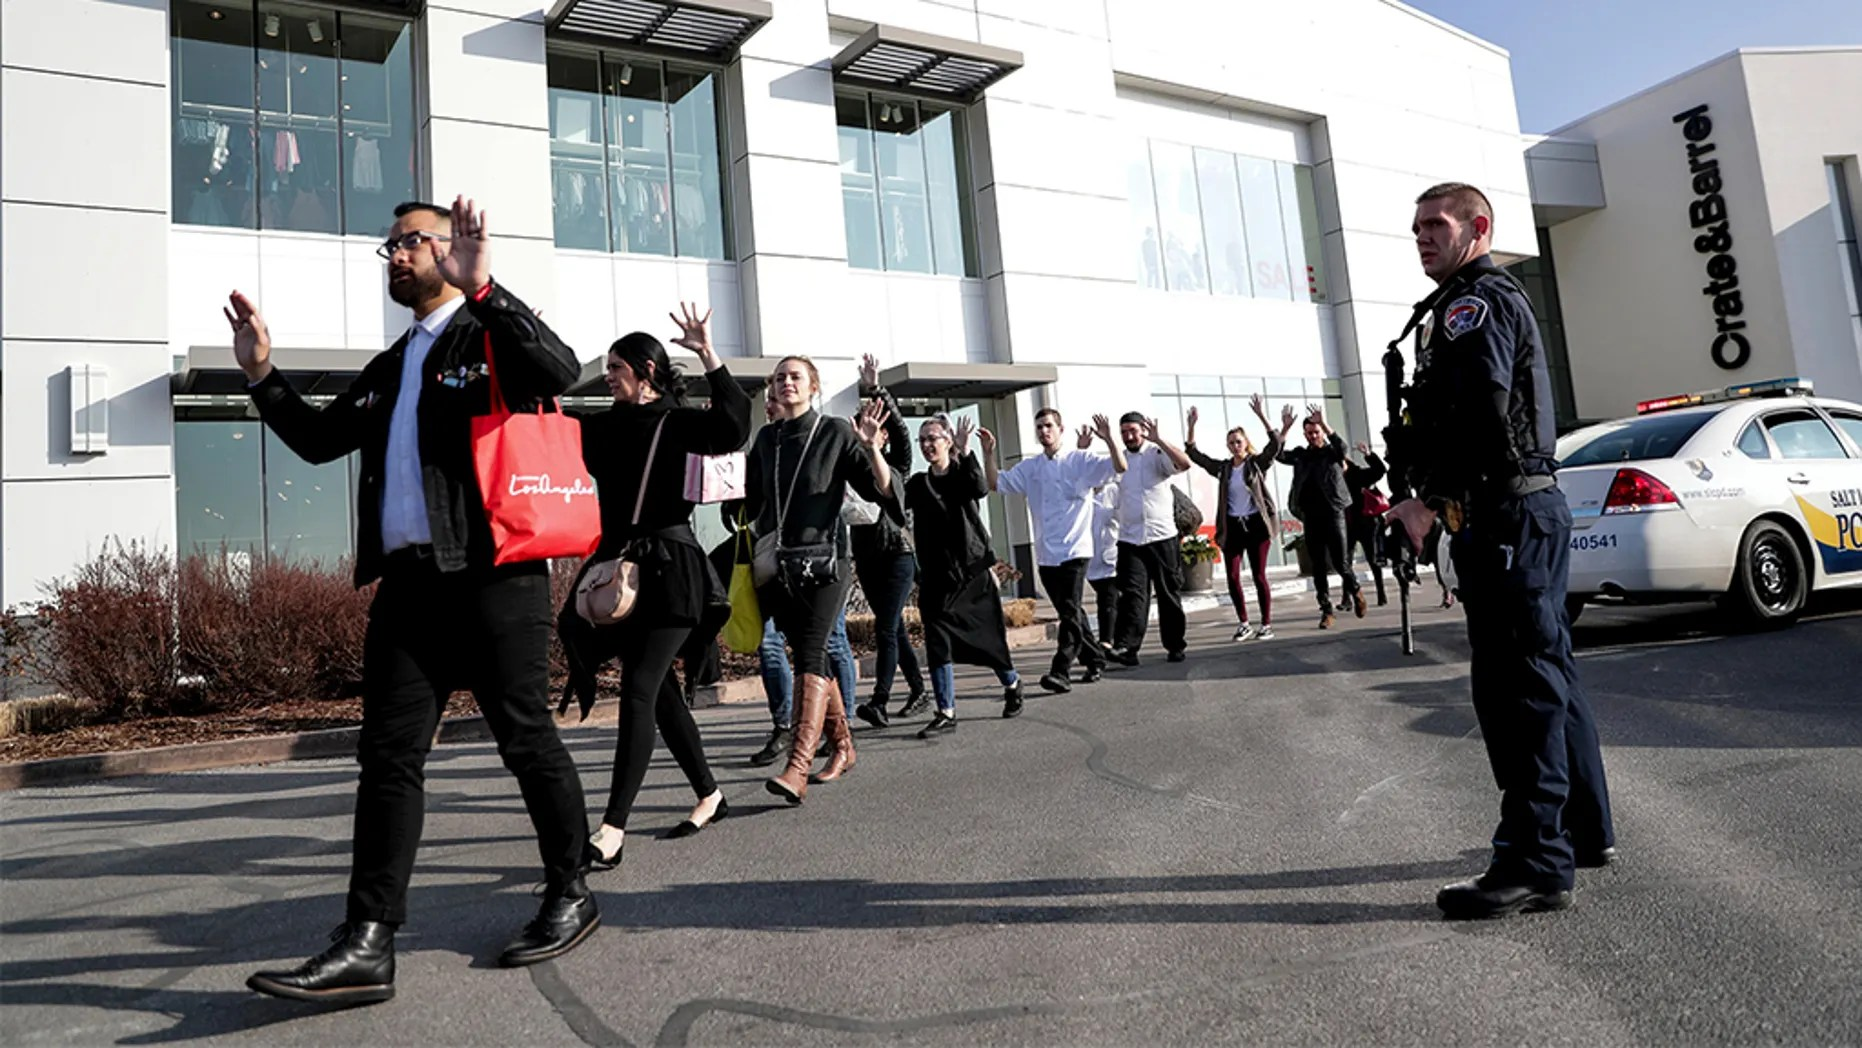 People evacuate after a reported shooting at Fashion Place Mall in Murray, Utah on Sunday, Jan. 13, 2019. (Spenser Heaps/The Deseret News via AP)